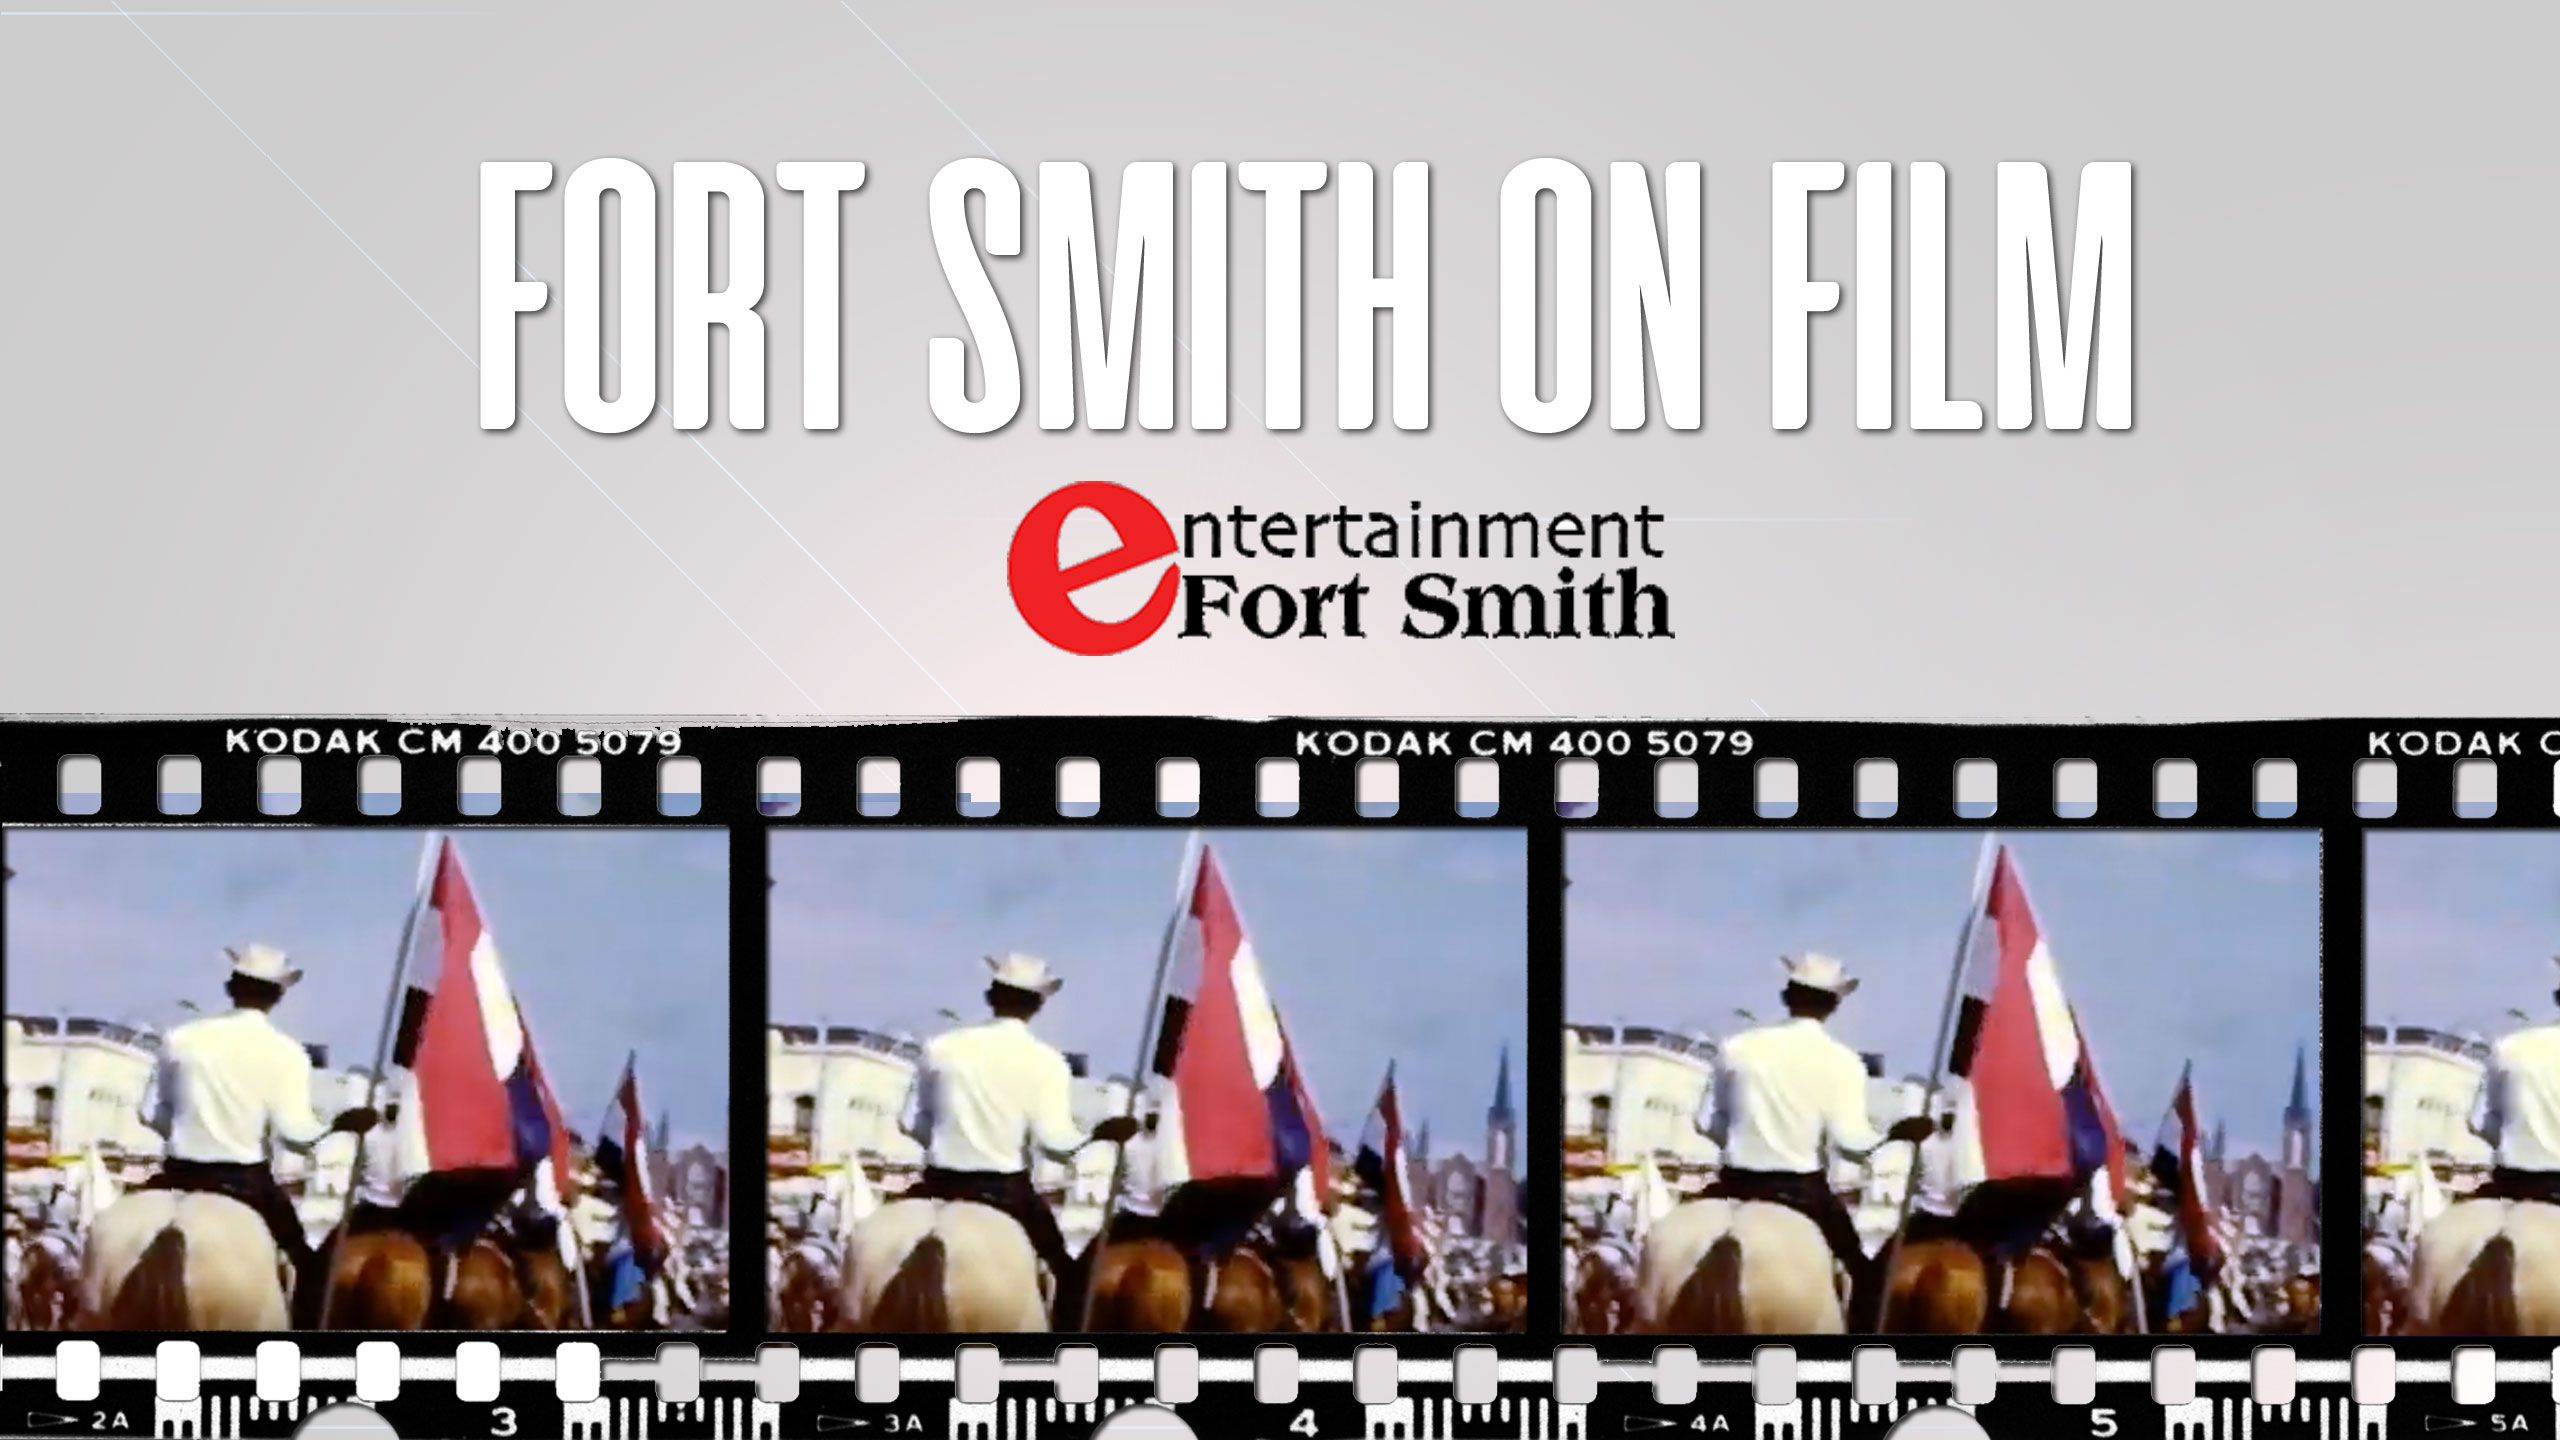 Fort Smith on Film: Everyday scenes glimpsed on 8mm movies